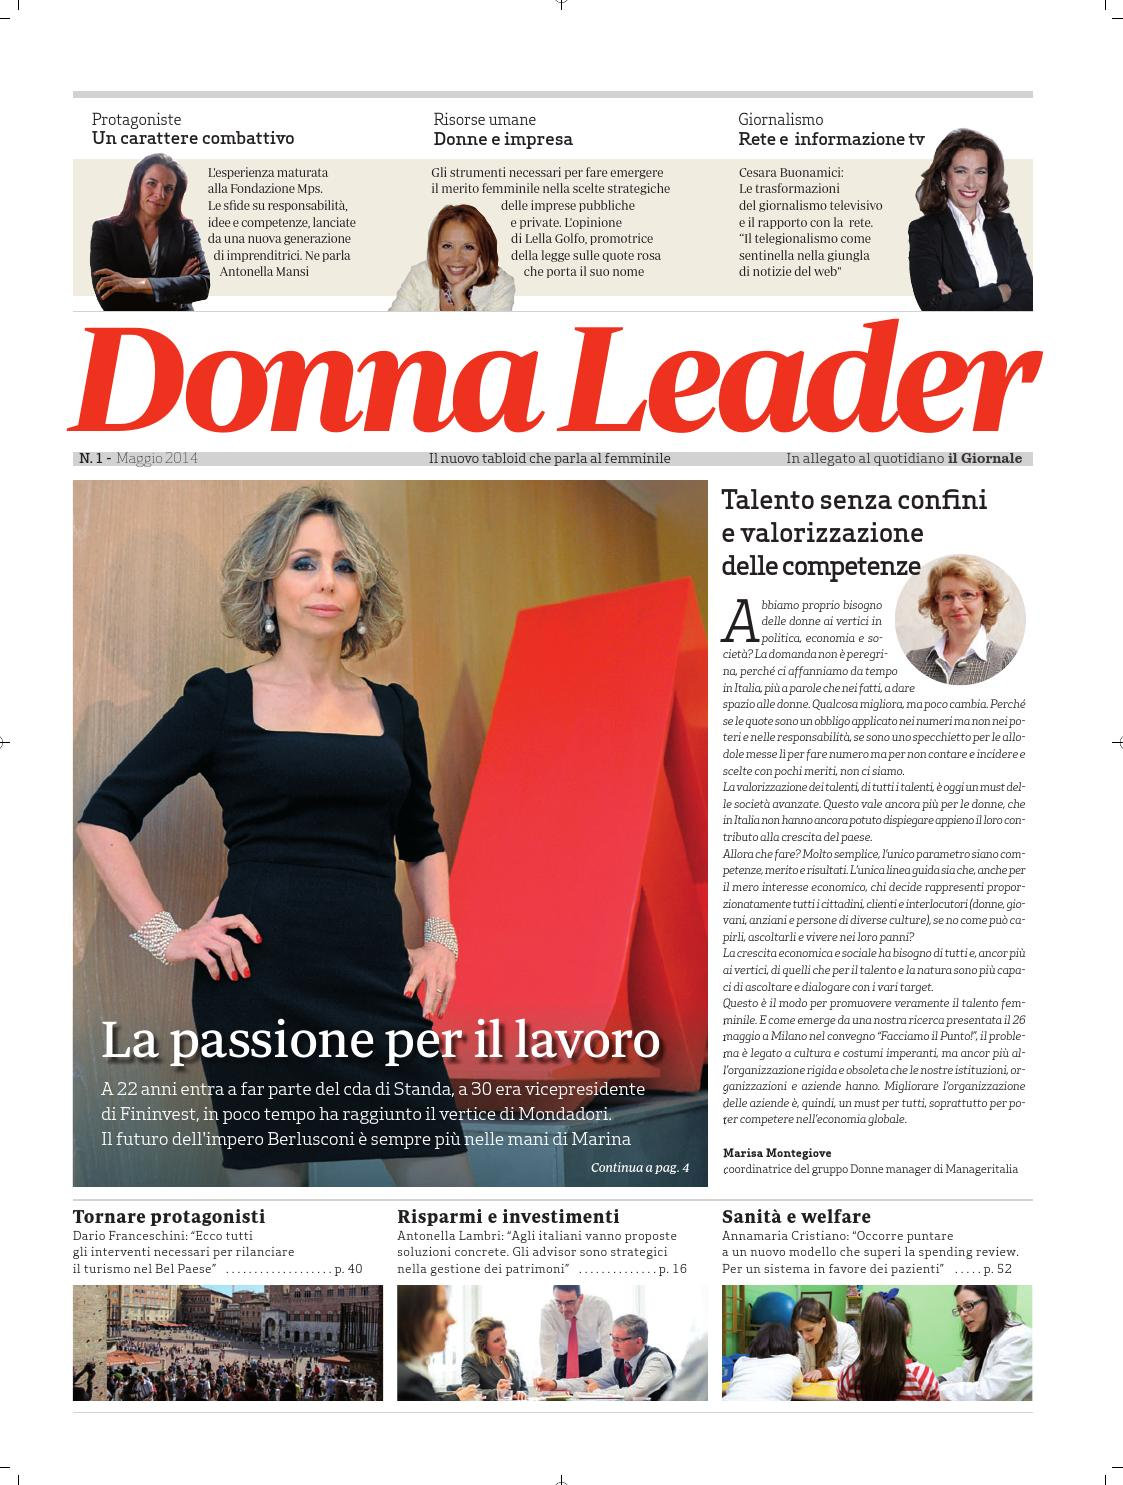 Donnaleader052014 by Foresite - issuu 147ad9d5e2e